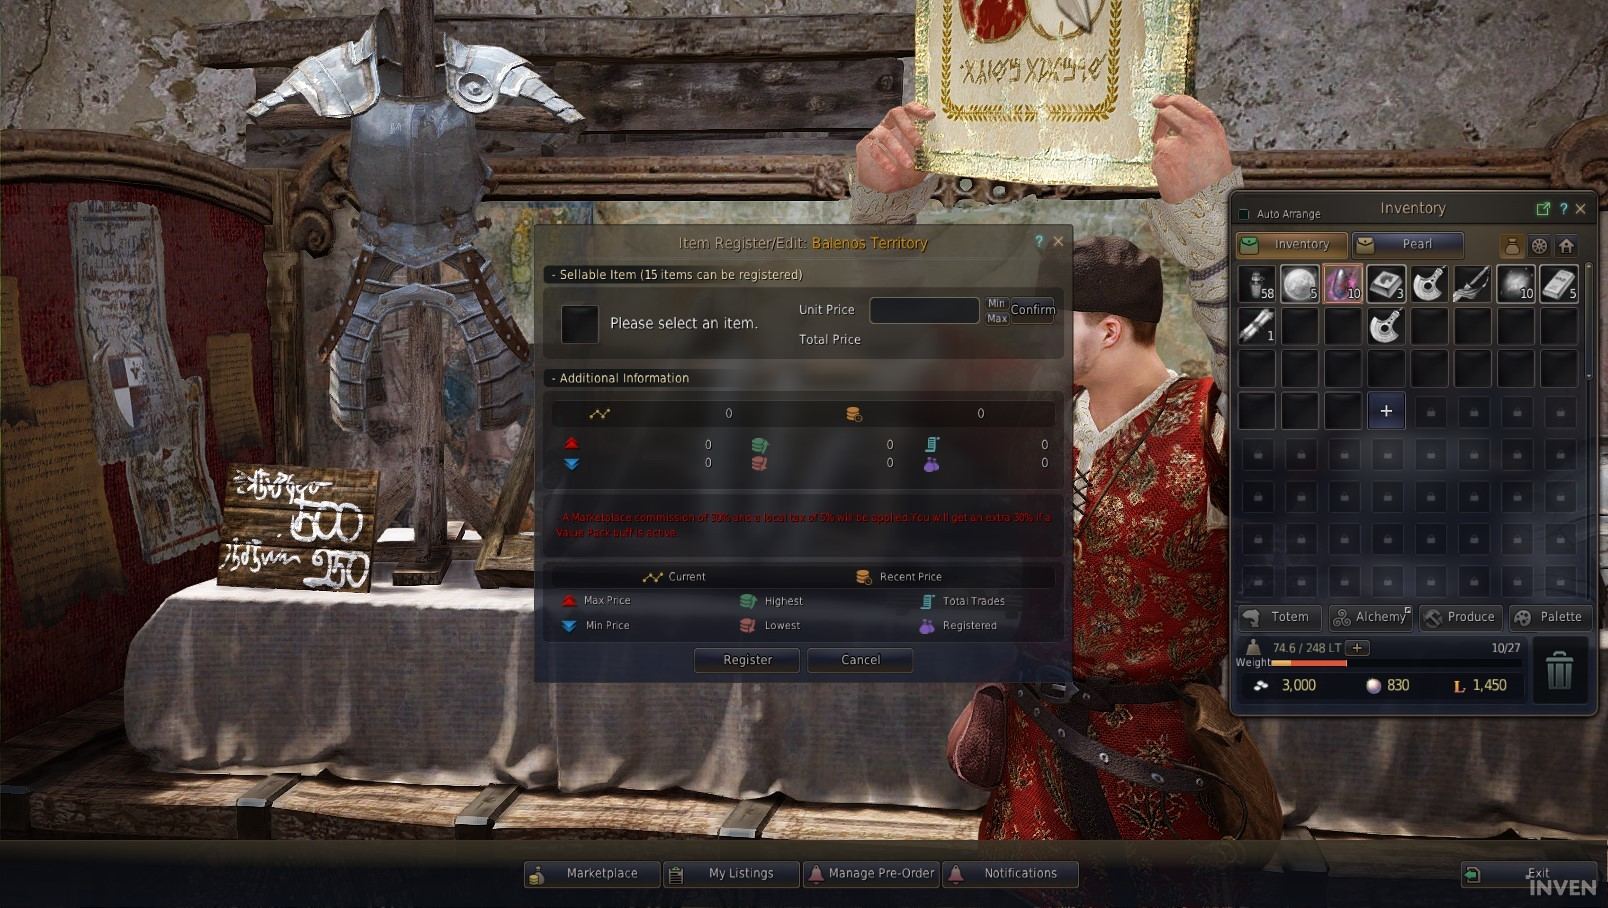 Black Desert Online Basics Guide - How to use the Marketplace